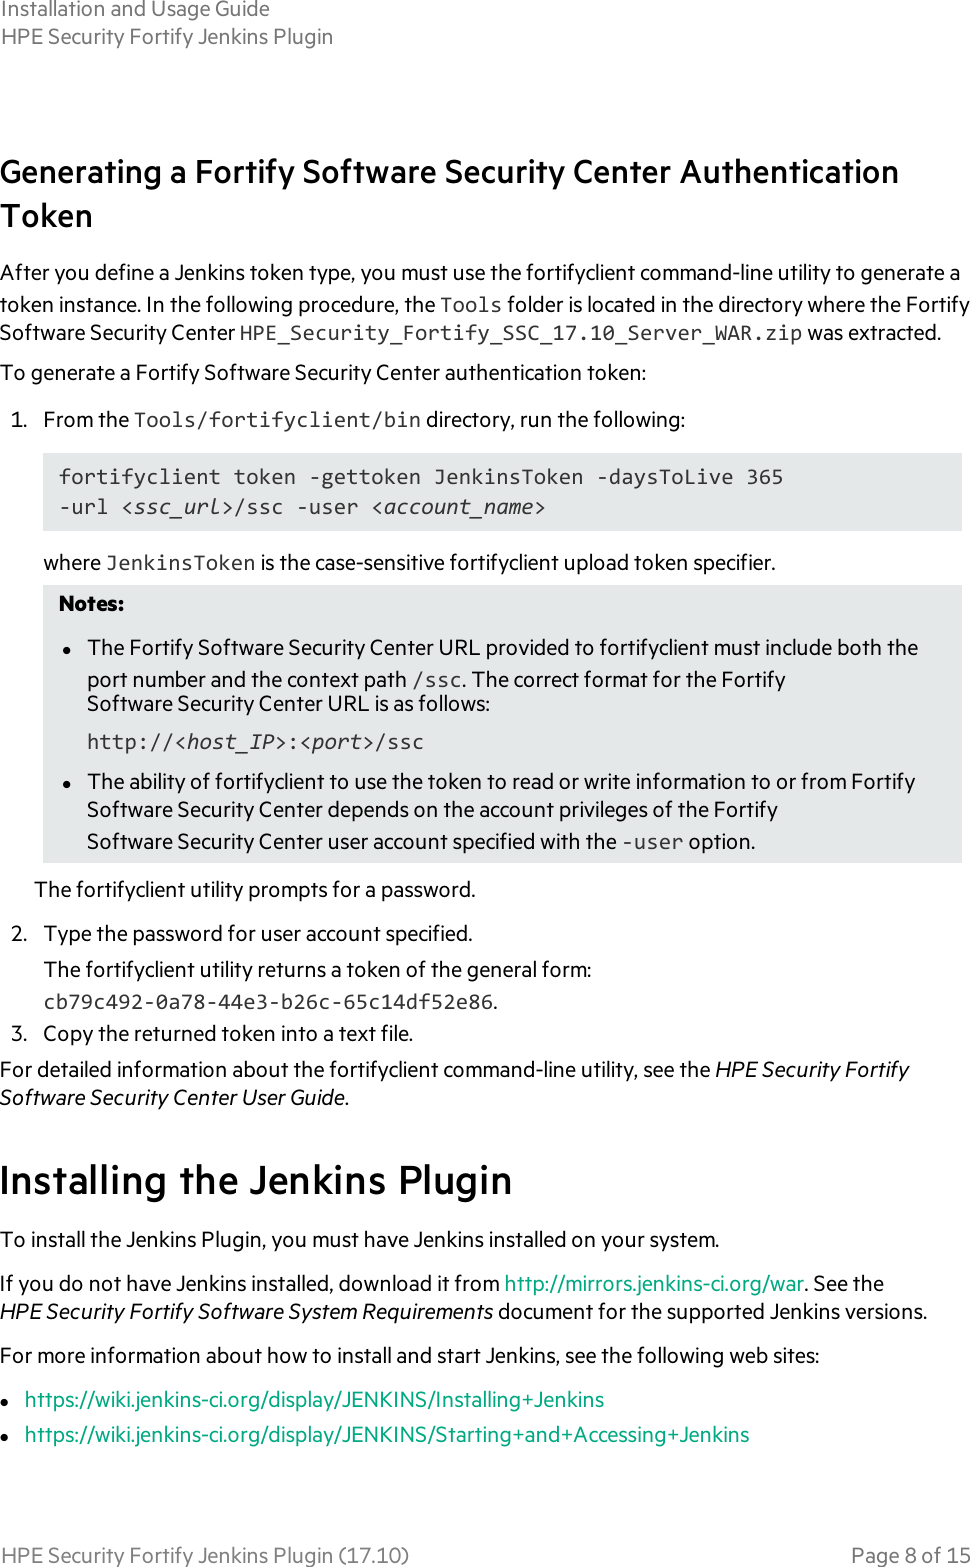 HPE Security Fortify Jenkins Plugin Installation And Usage Guide 17 10